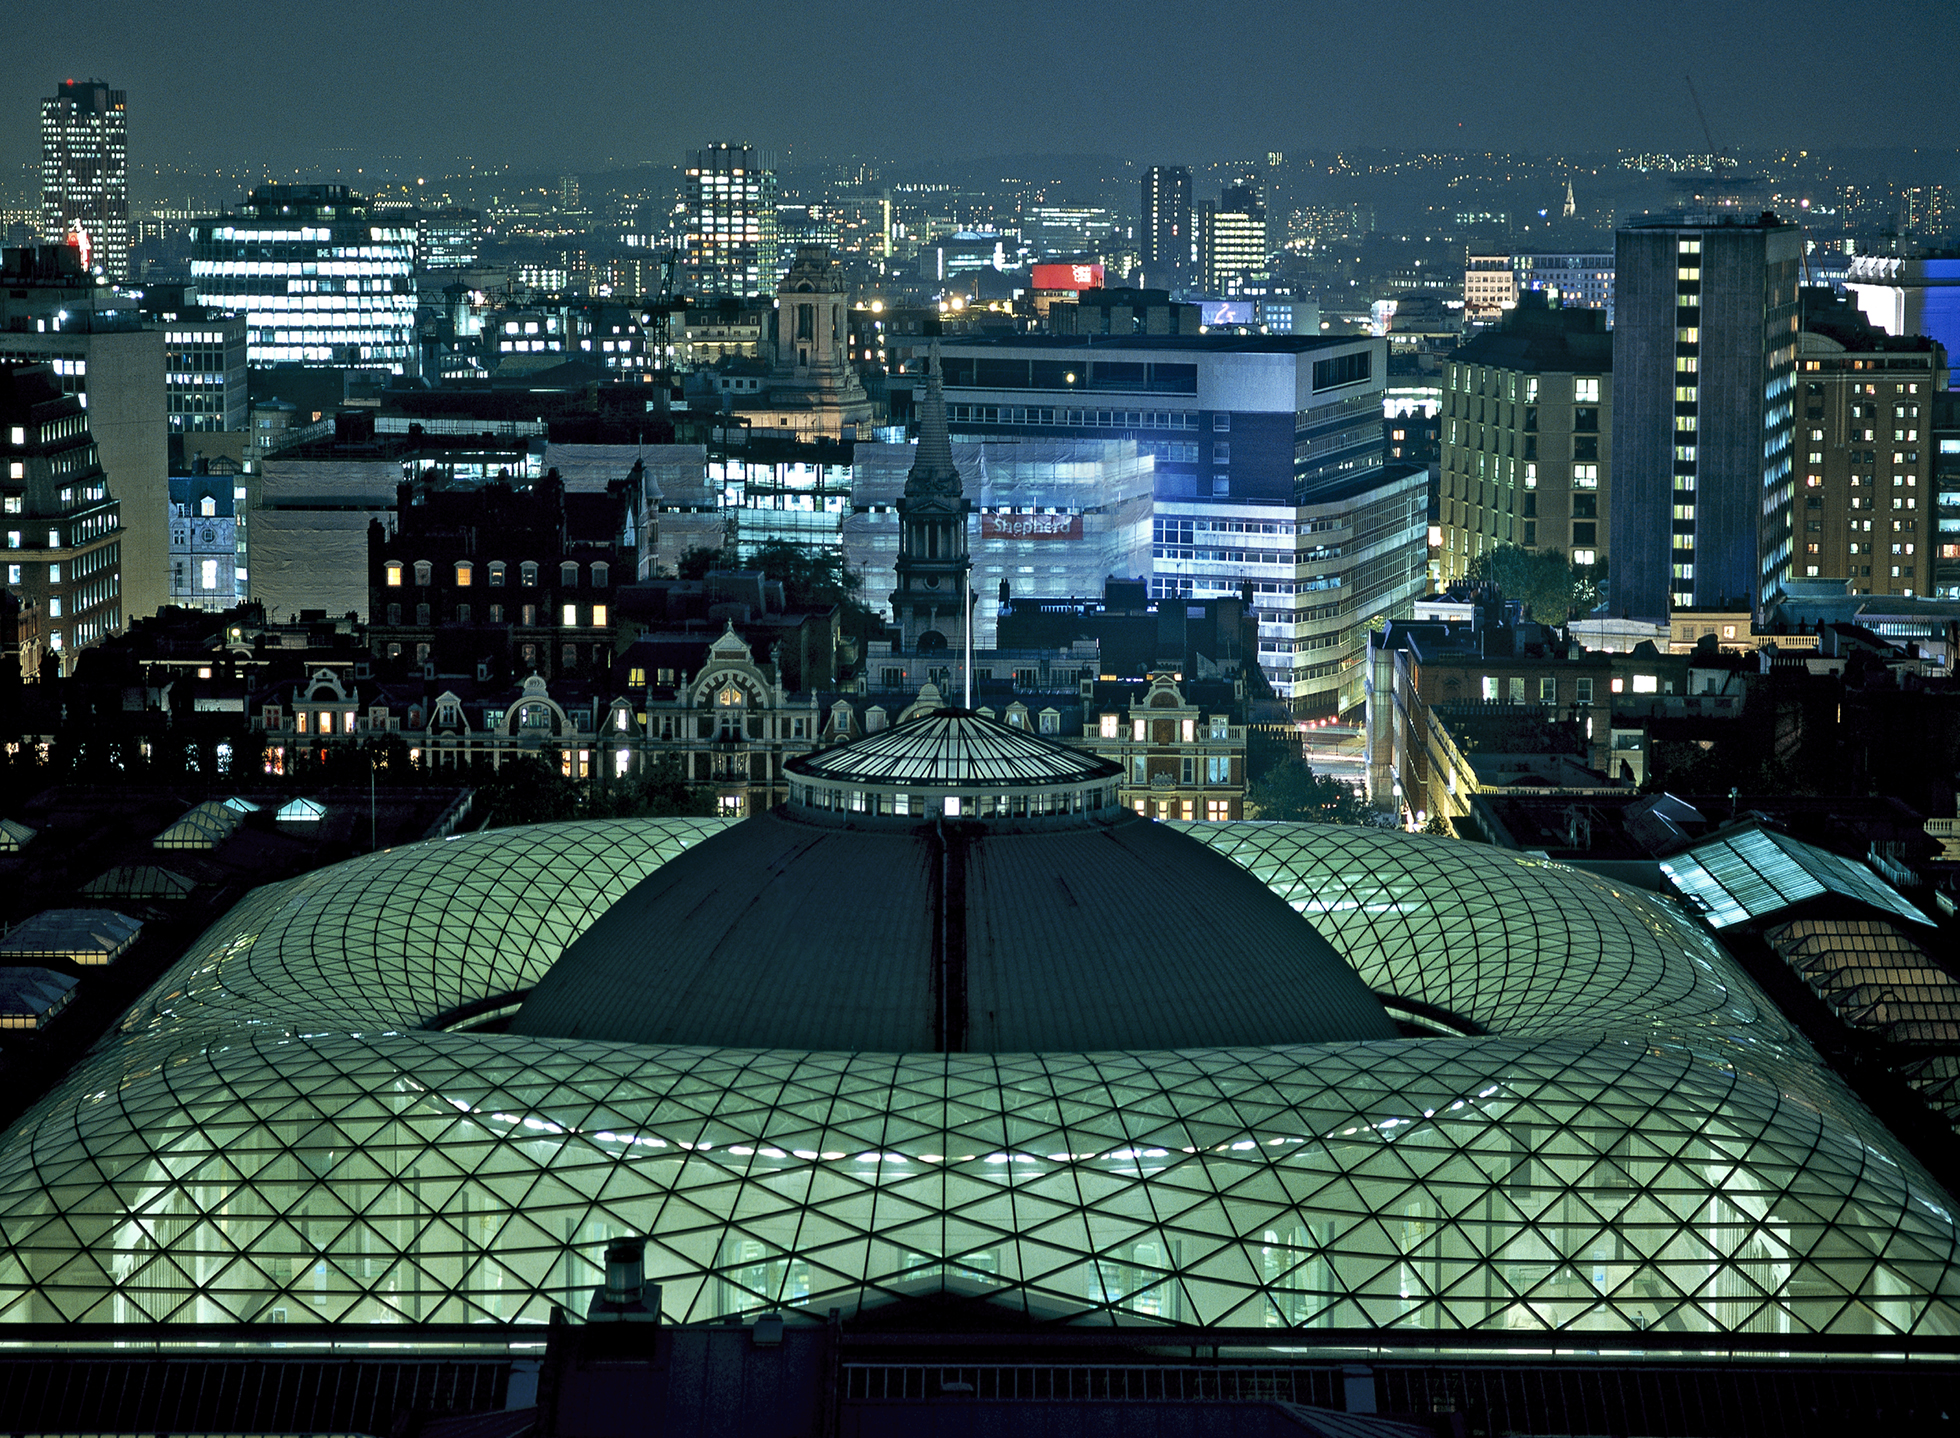 A photograph of the Great Court at night taken from above, illuminated in green from the inside, with the skyline of London lit up in the background.